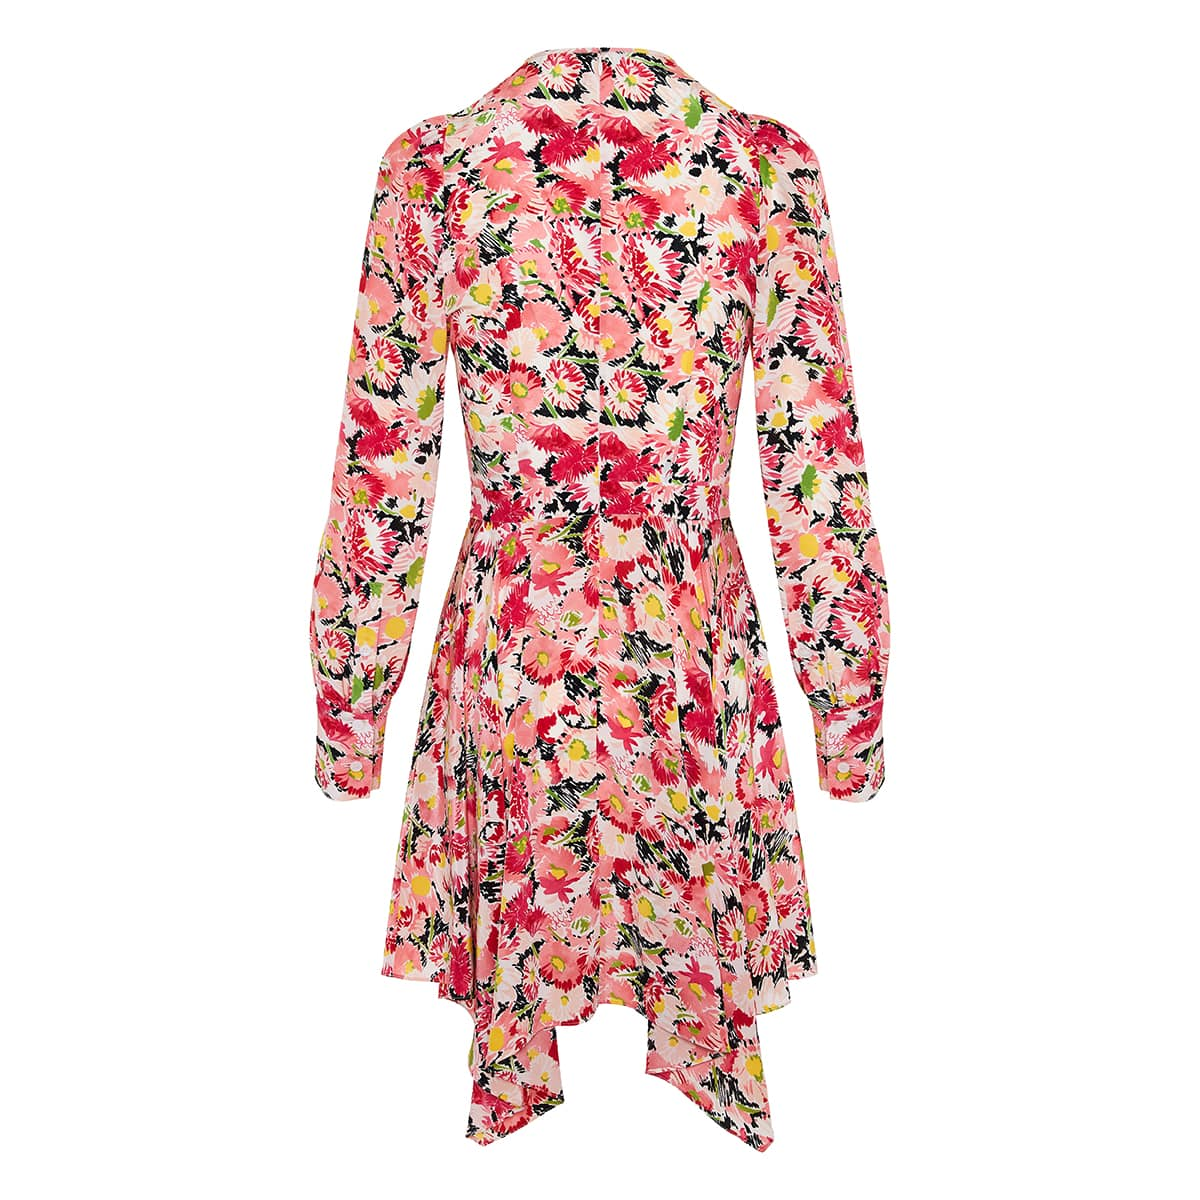 Felicity asymmetric floral dress